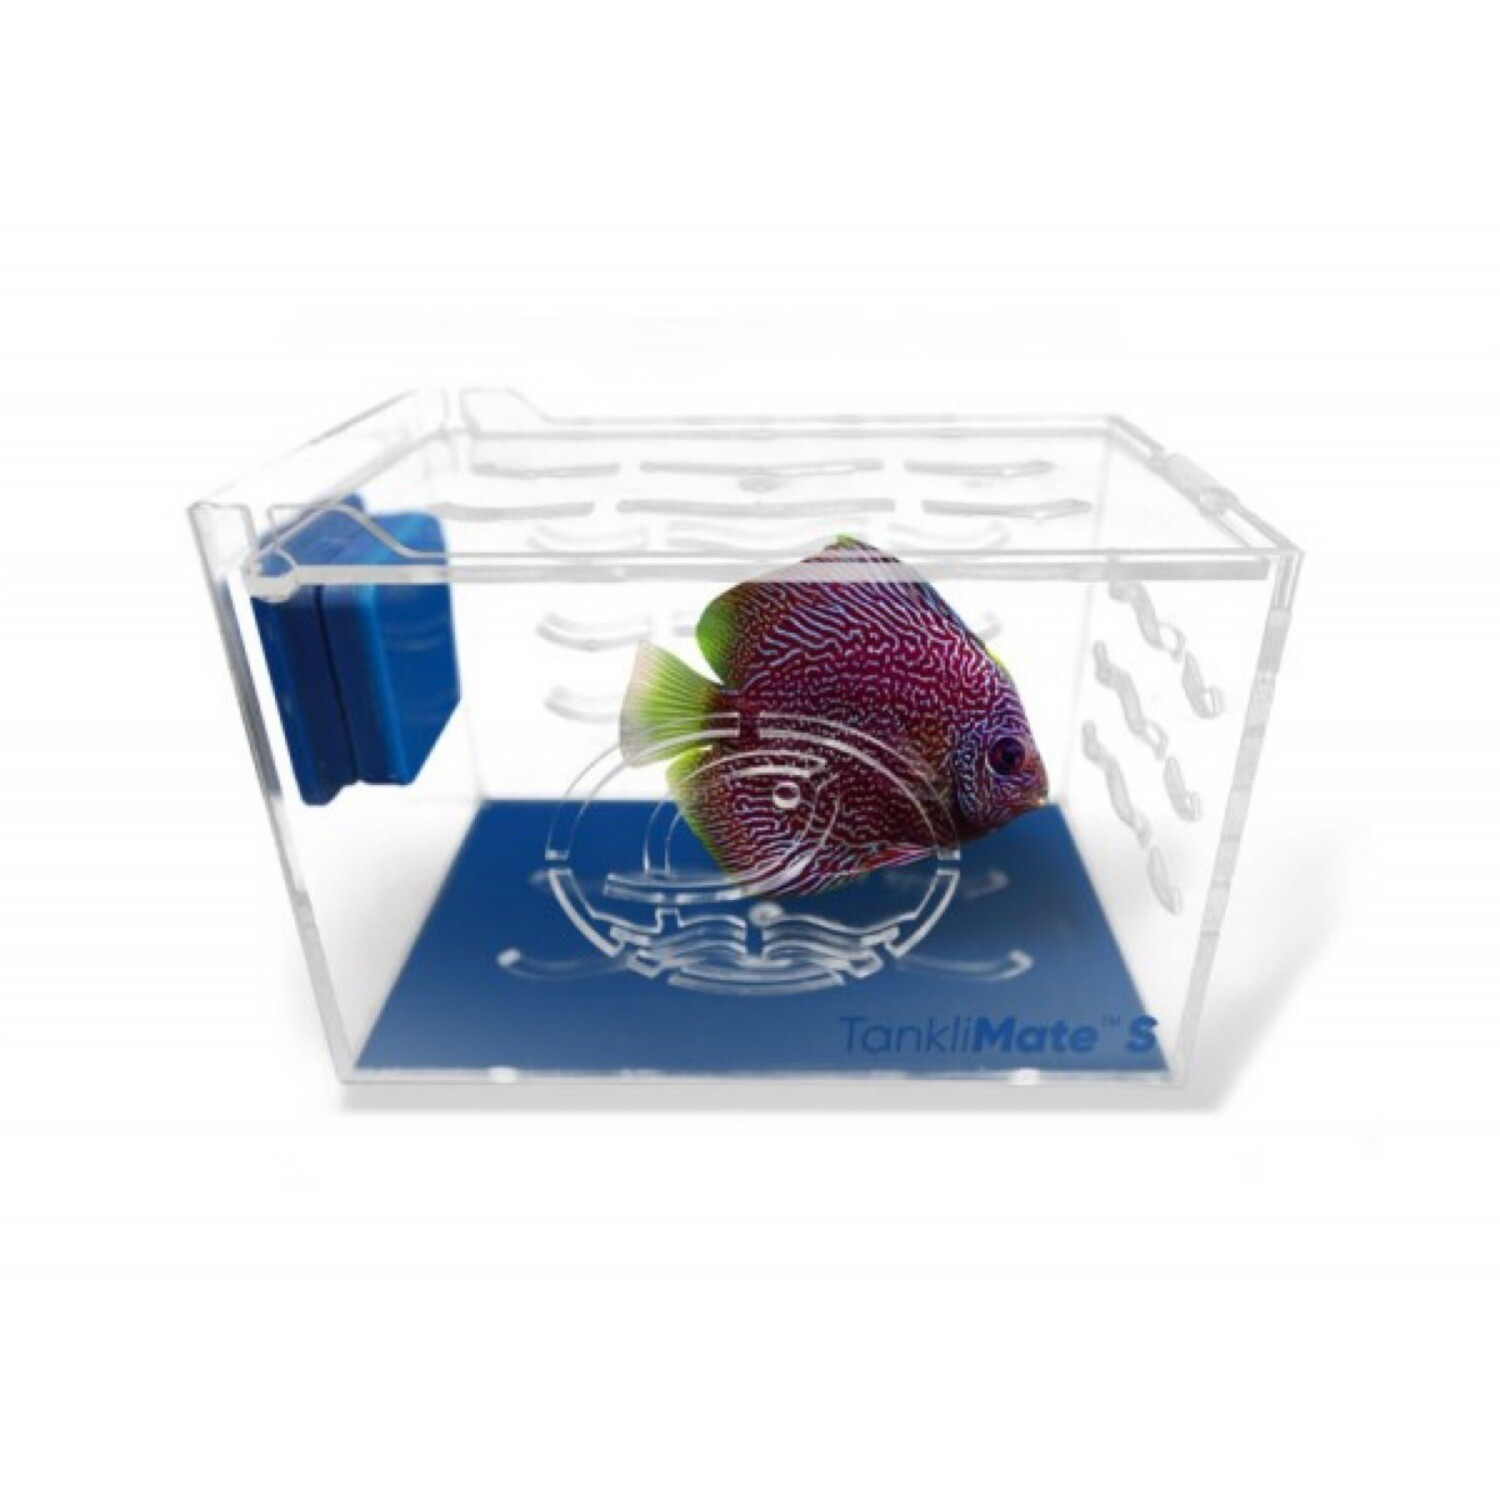 Eshopps Tanklimate Acclimation Box Small 6x4x4